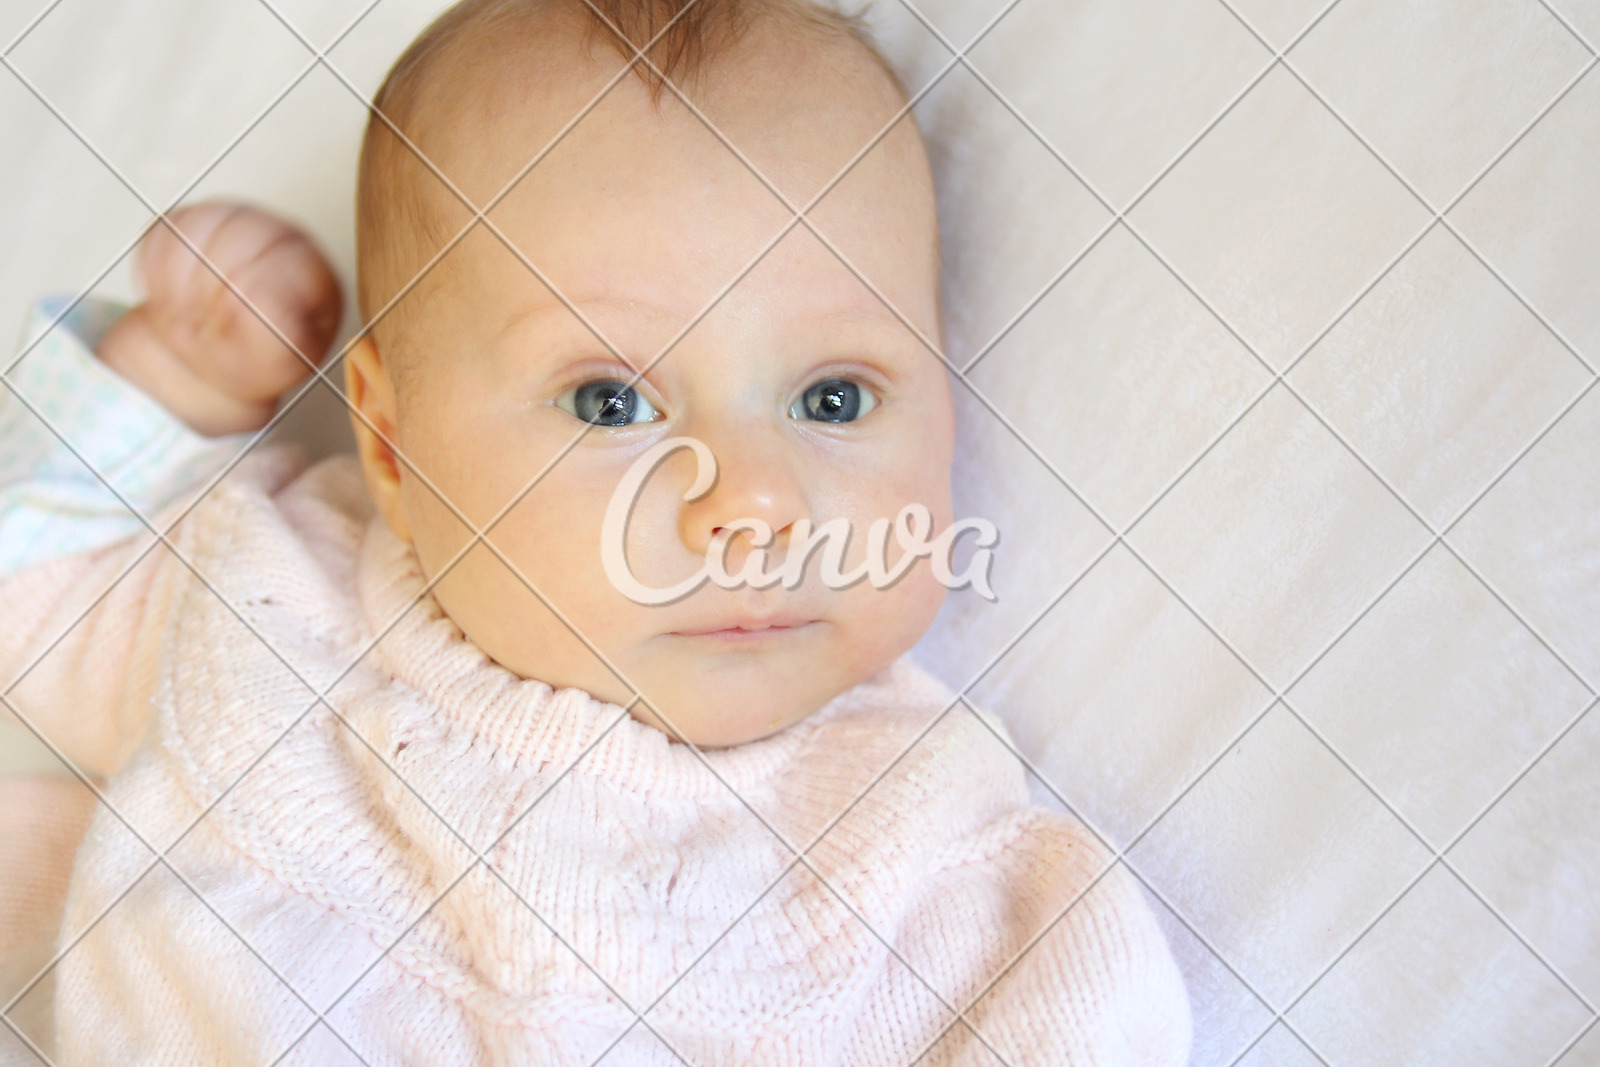 Newborn Babies With Blue Eyes Sweet Newborn Baby Girl With Bright Blue Eyes Photos By Canva